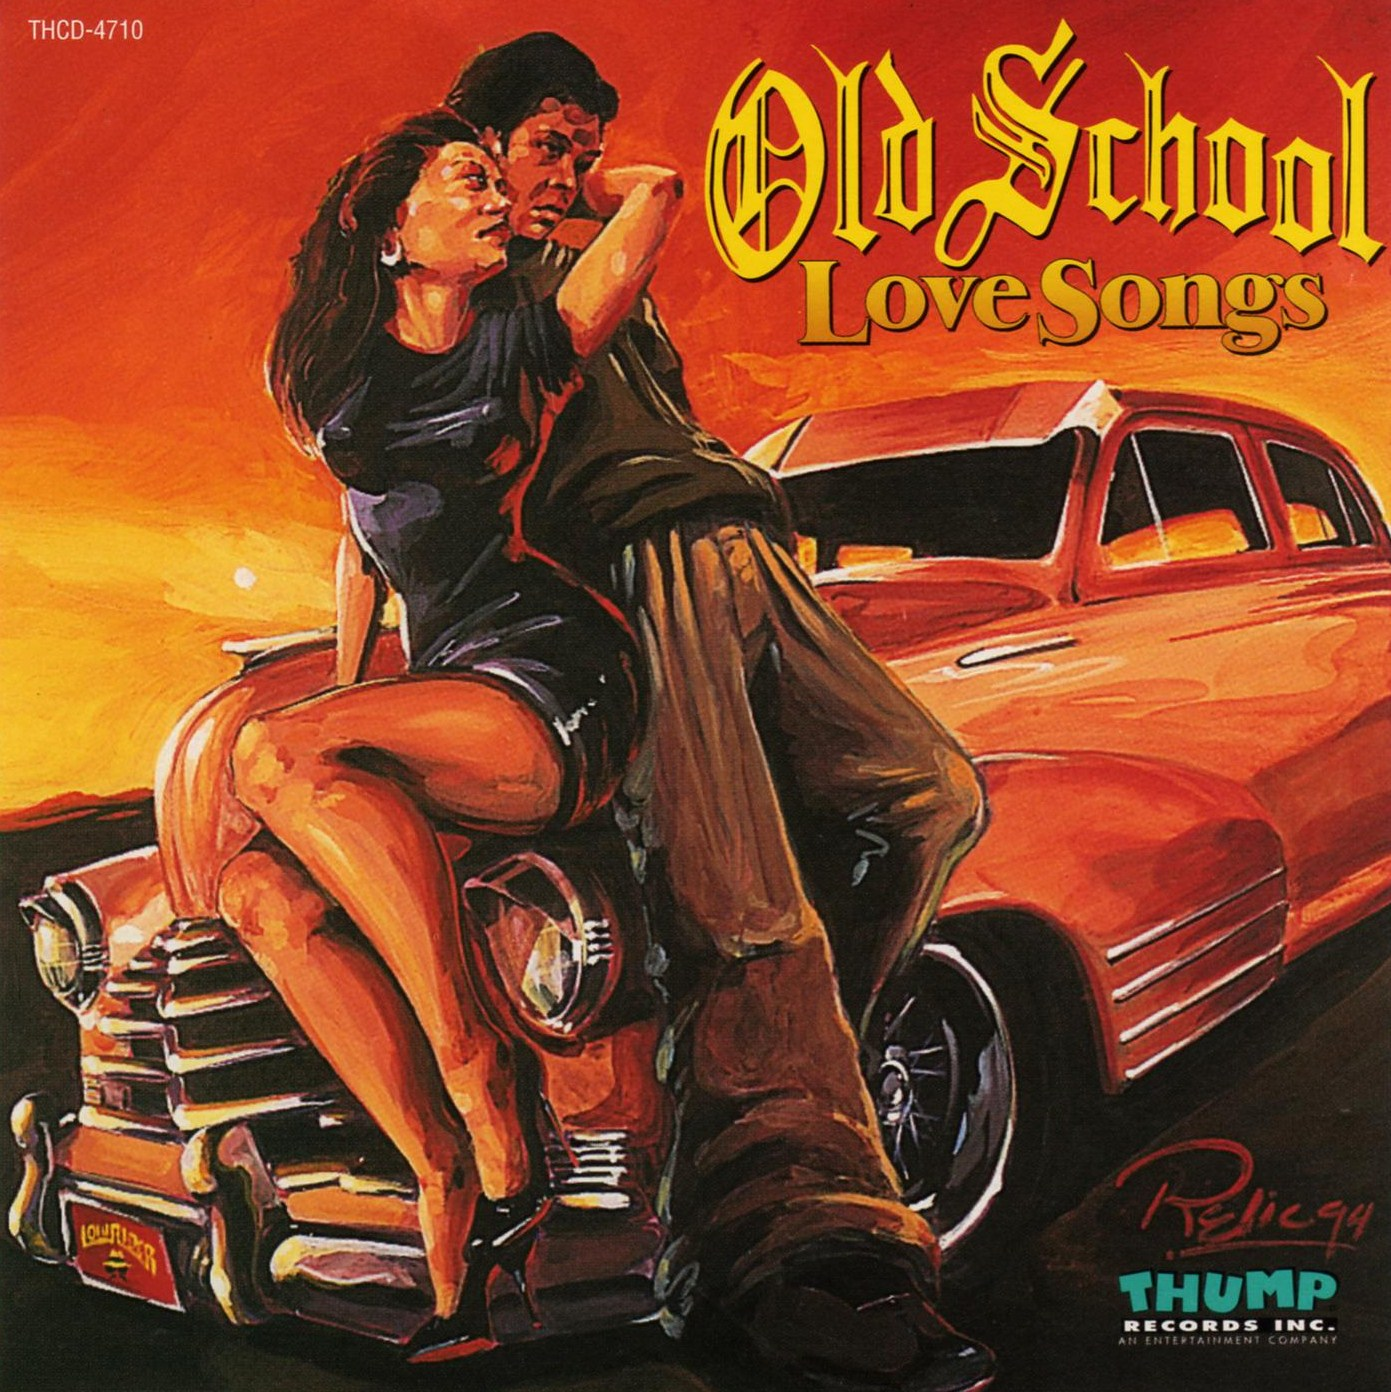 I do love you oldies song